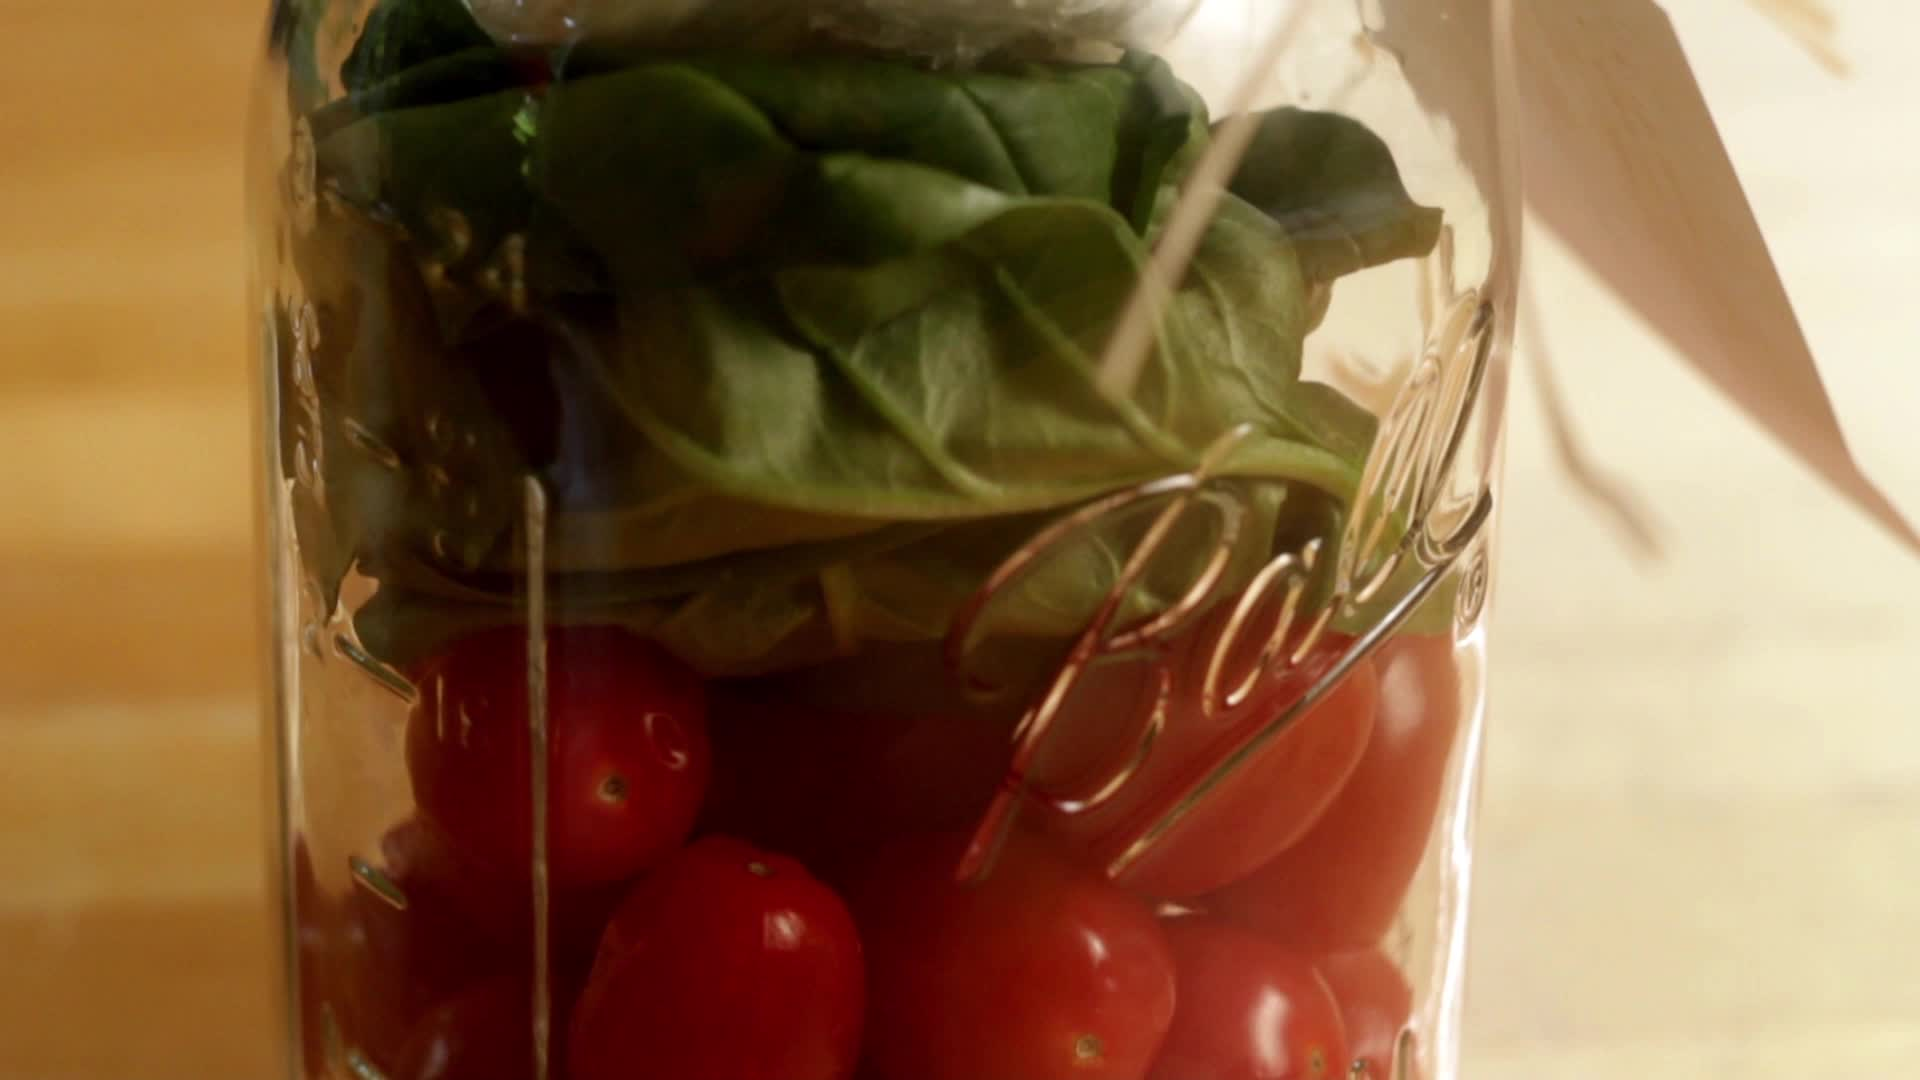 How to Make a Caprese Salad Kit as an Edible Gift